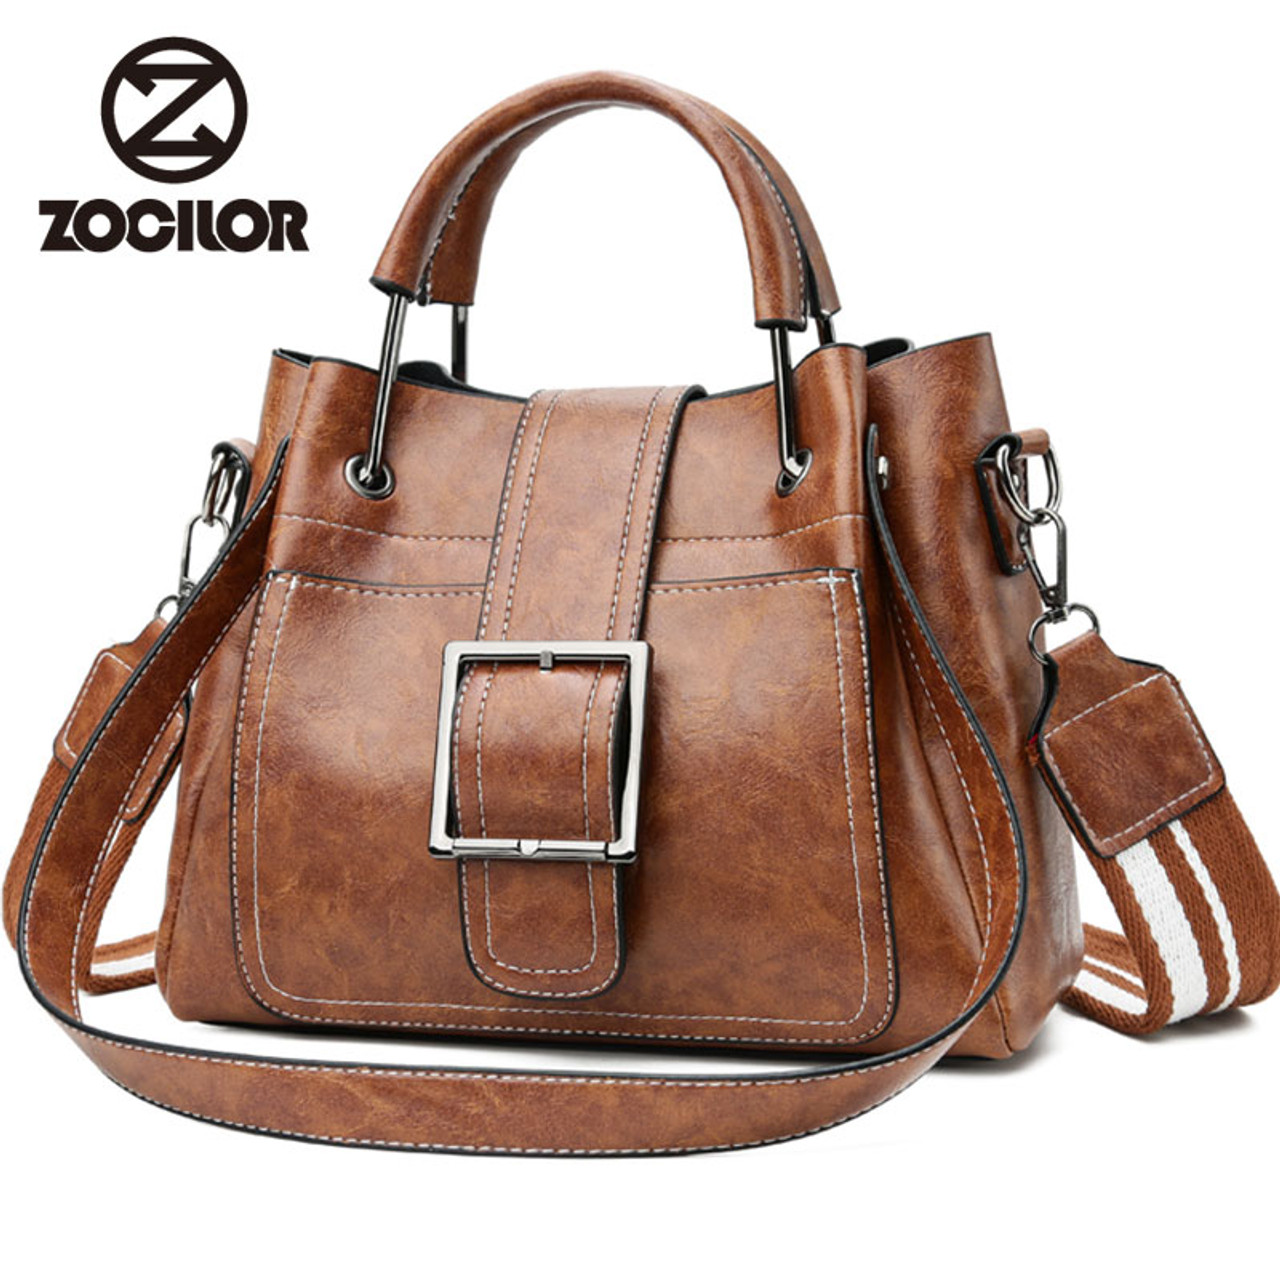 35e61b738dba Fashion Women Messenger Bags Vintage Belts Shoulder Bags Women Handbags  Designer high quality PU Leather Ladies Hand Bags Sac - OnshopDeals.Com